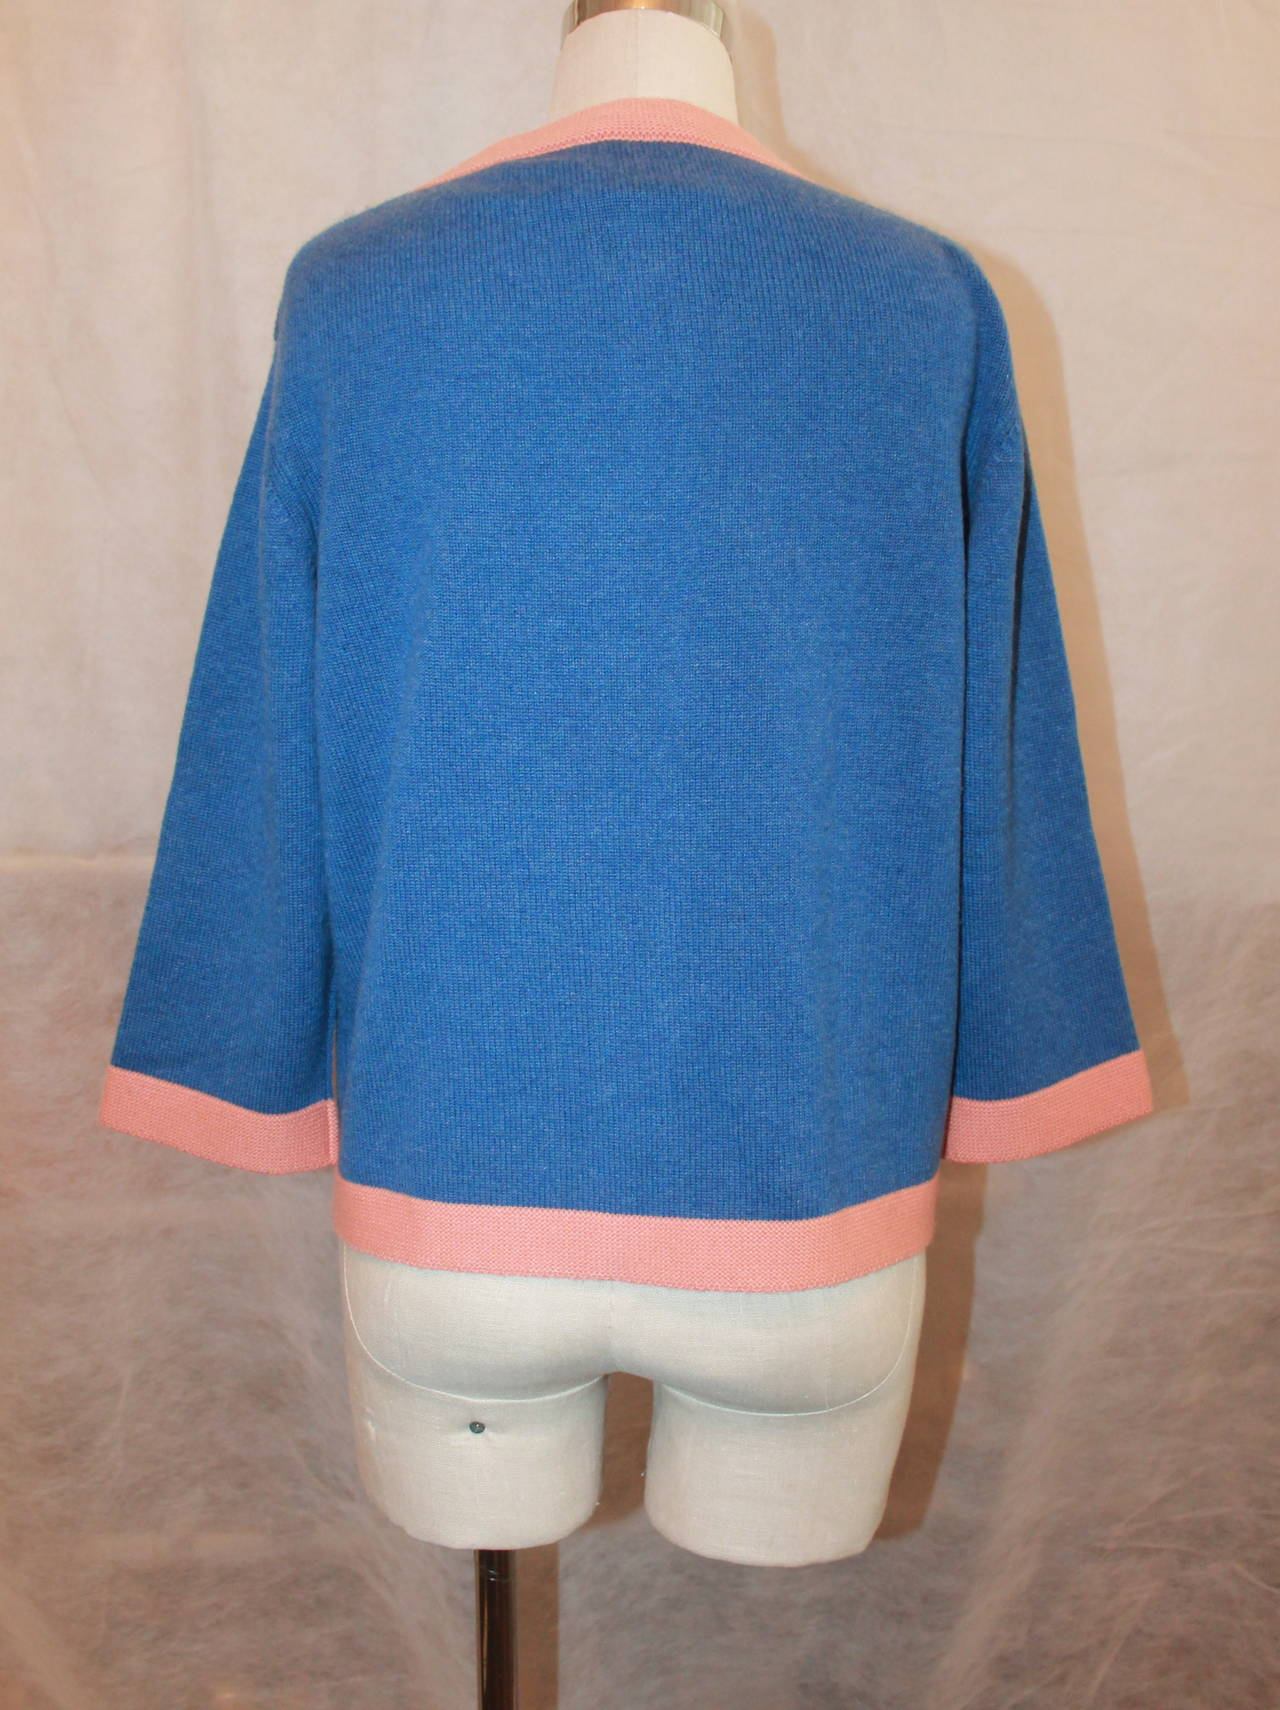 Chanel 2007 Blue & Peach Cashmere Sweater - 46 For Sale 1